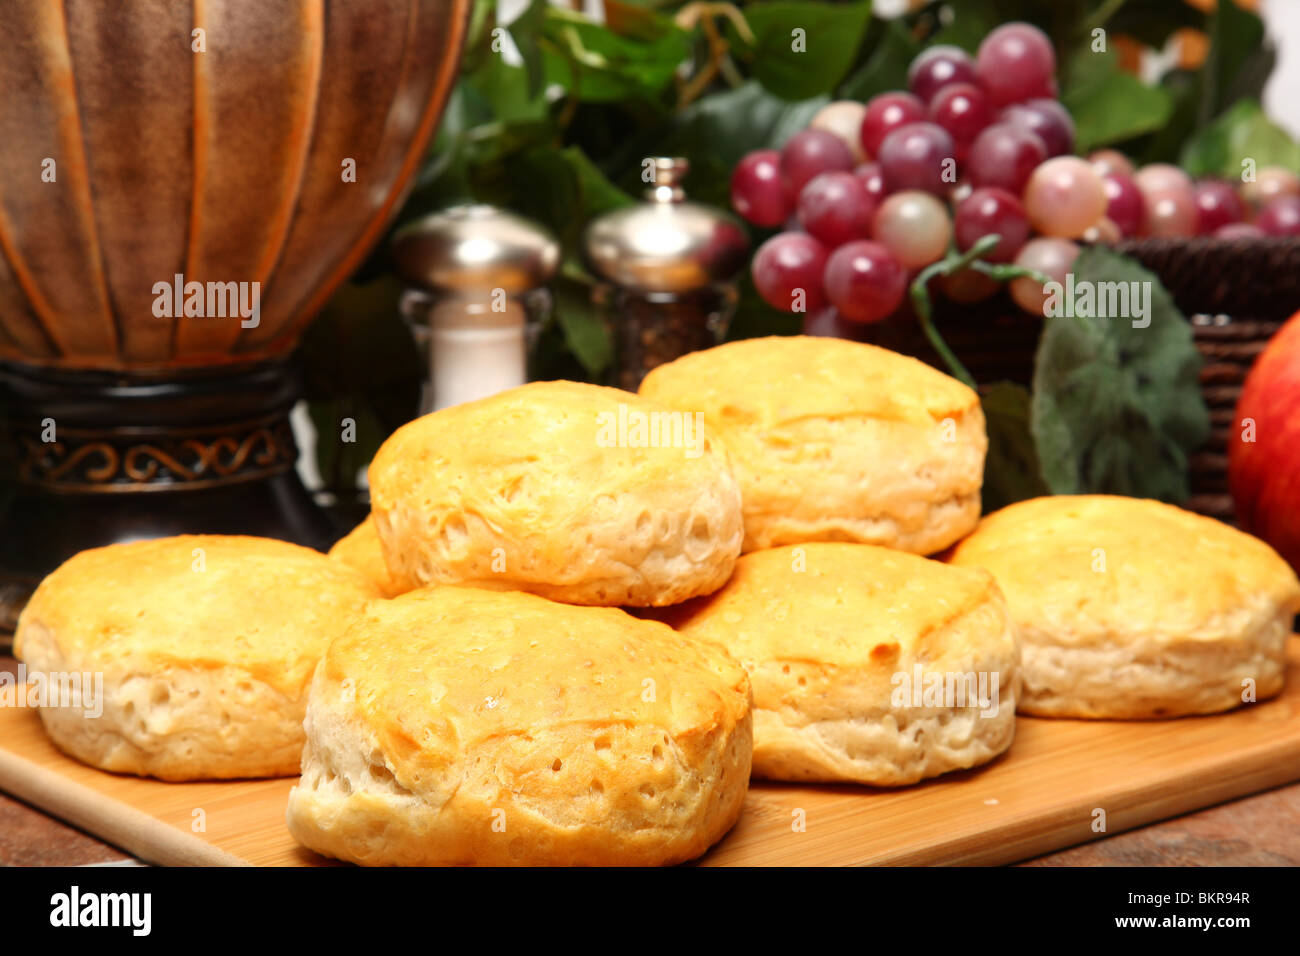 Stack of hot fresh breakfast biscuits on cutting board in kitchen. - Stock Image